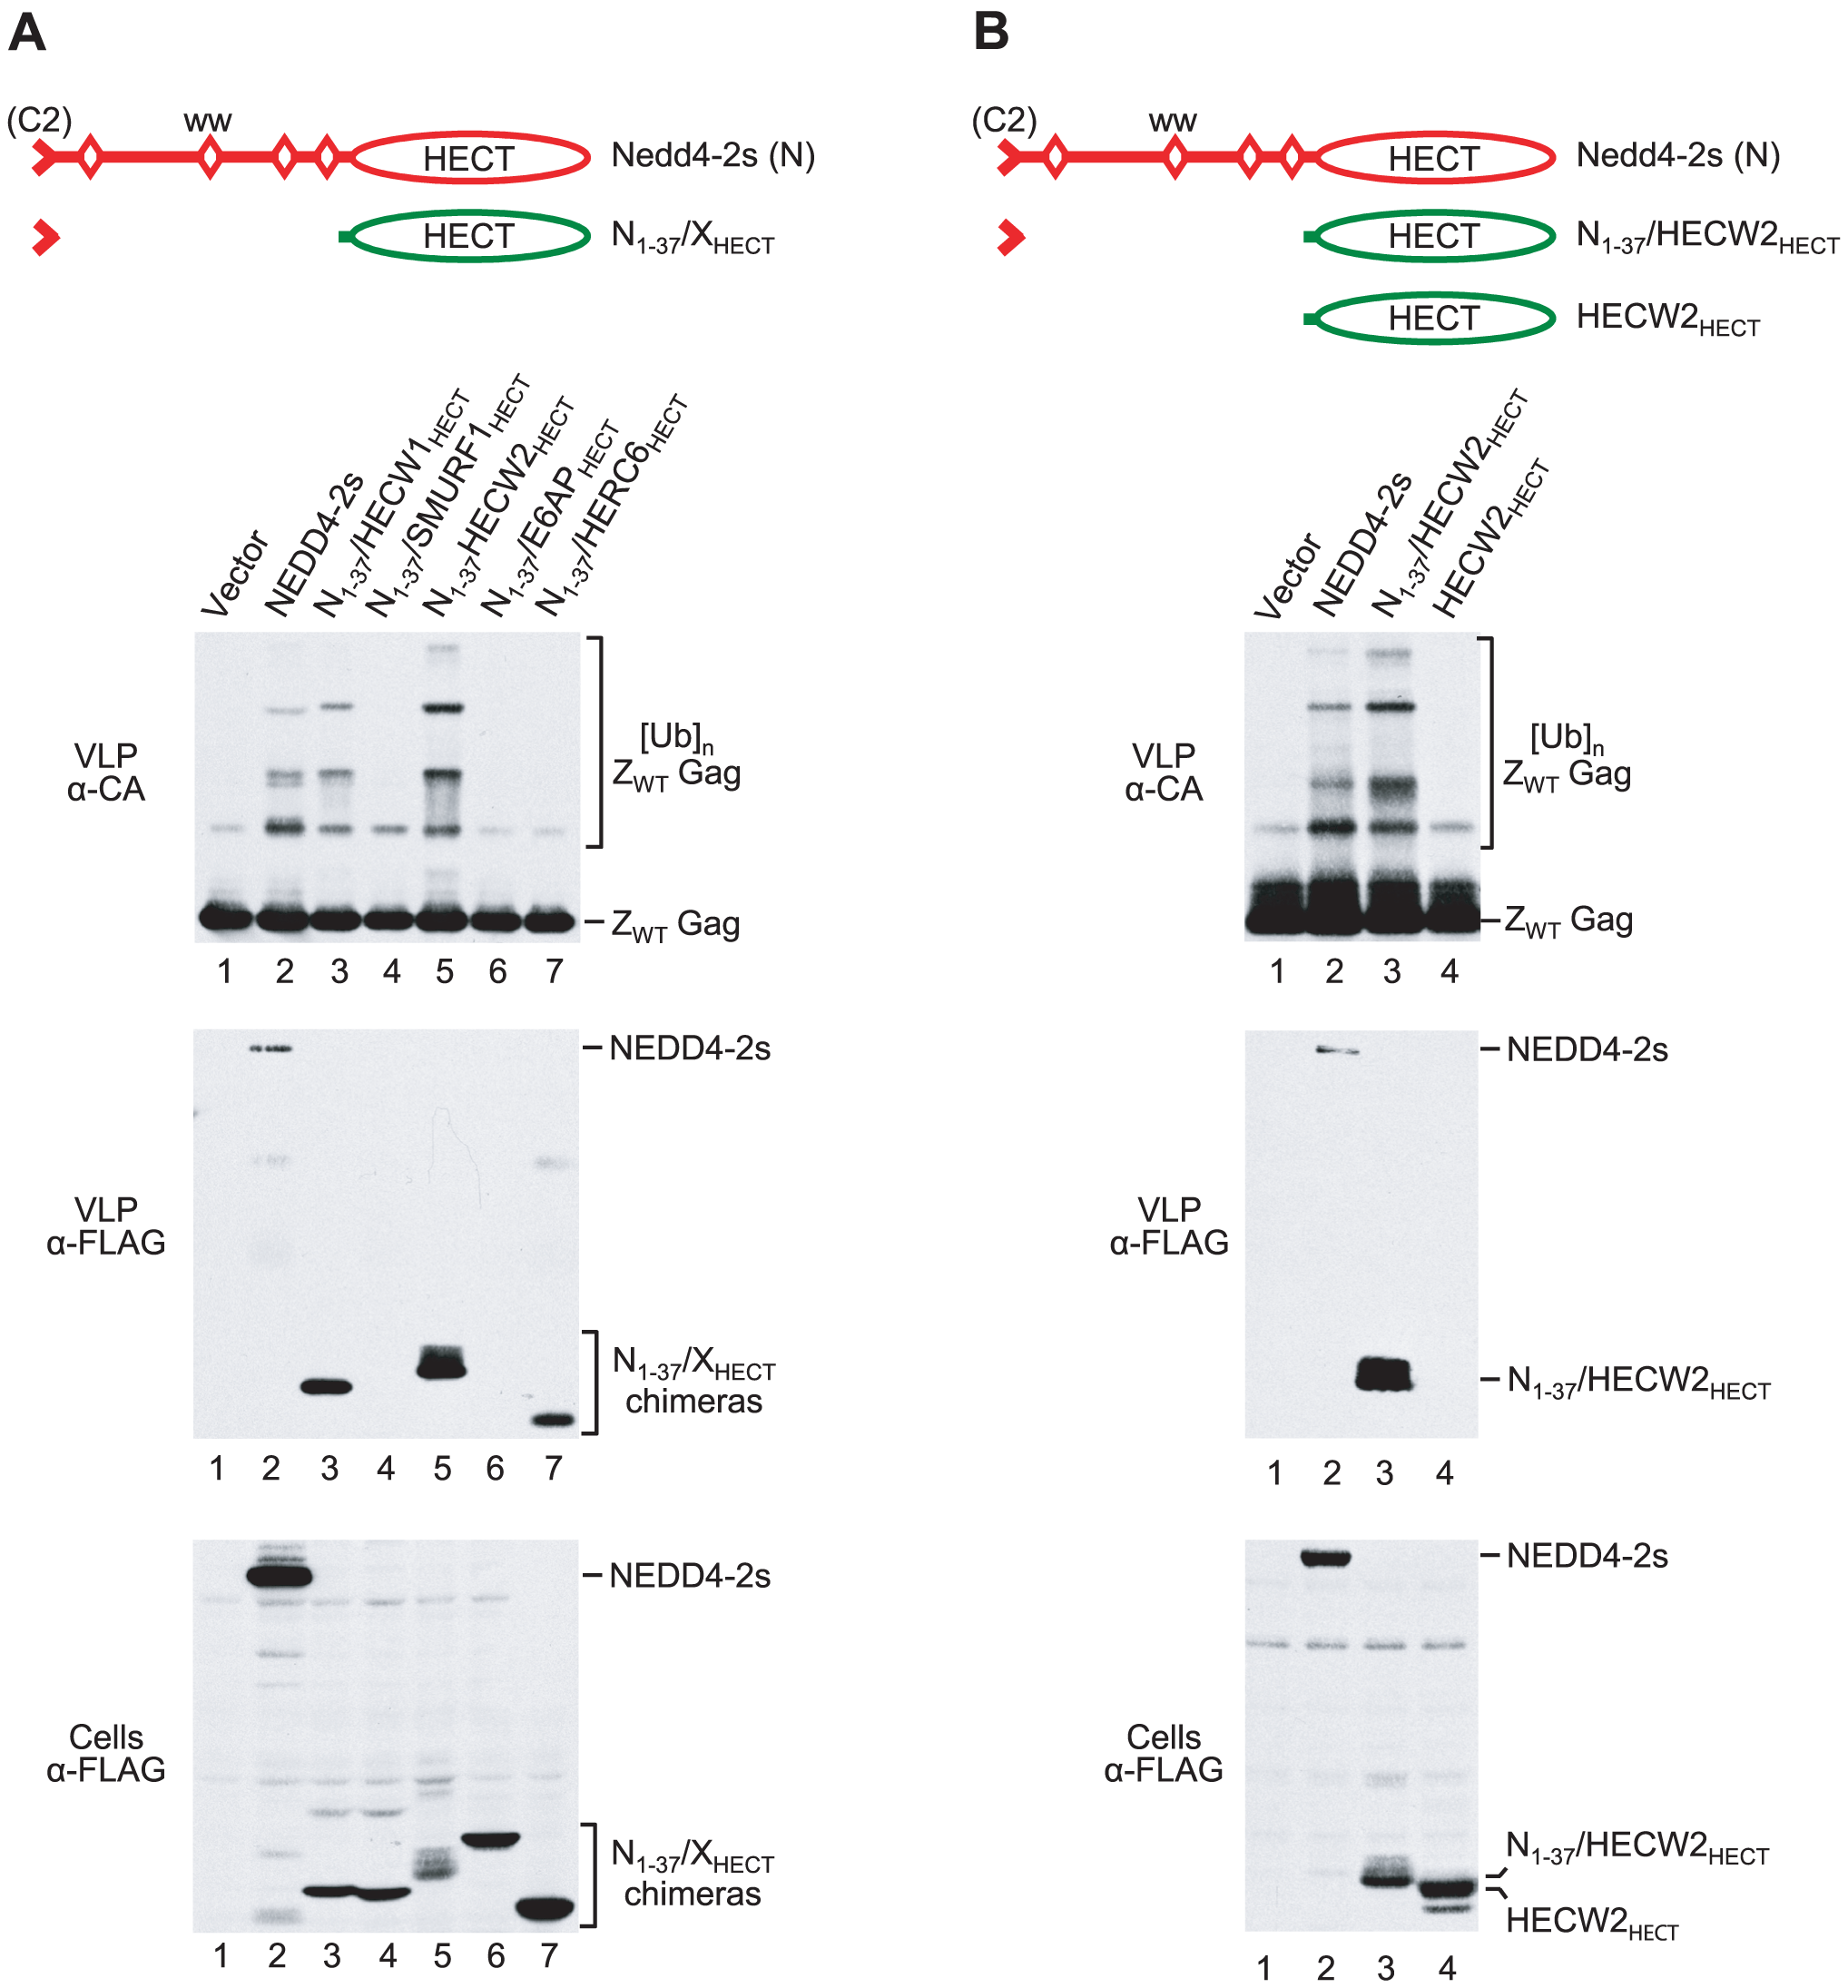 The NEDD4-2s residual C2 domain is sufficient to target some isolated HECT domains to Gag.